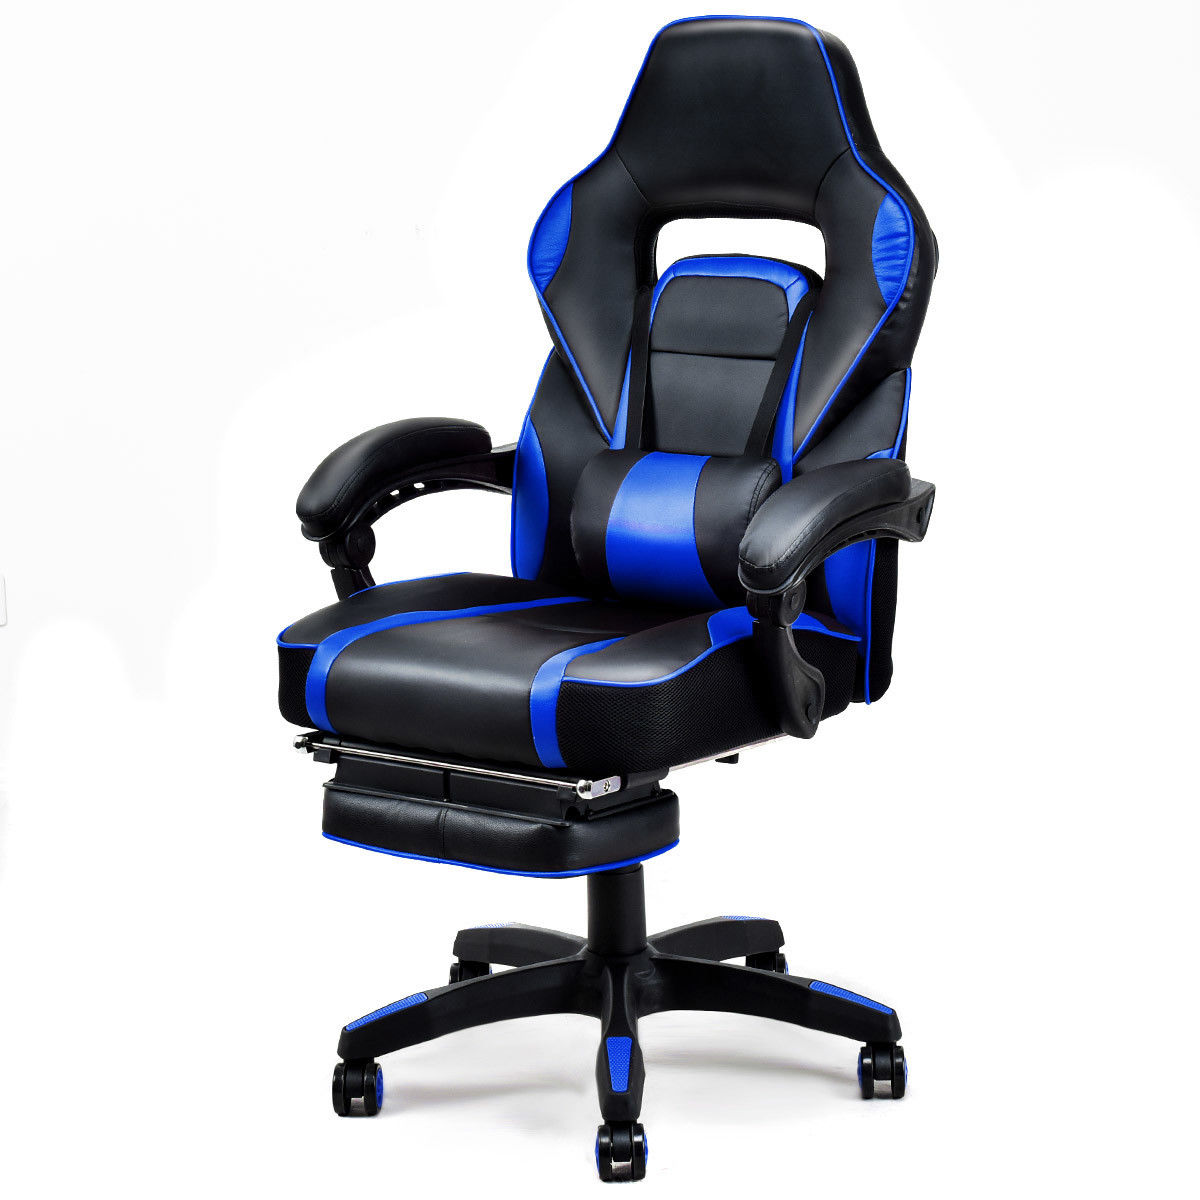 Gymax Office Home Racing Style Executive High Back Gaming Chair W/ Ottoman